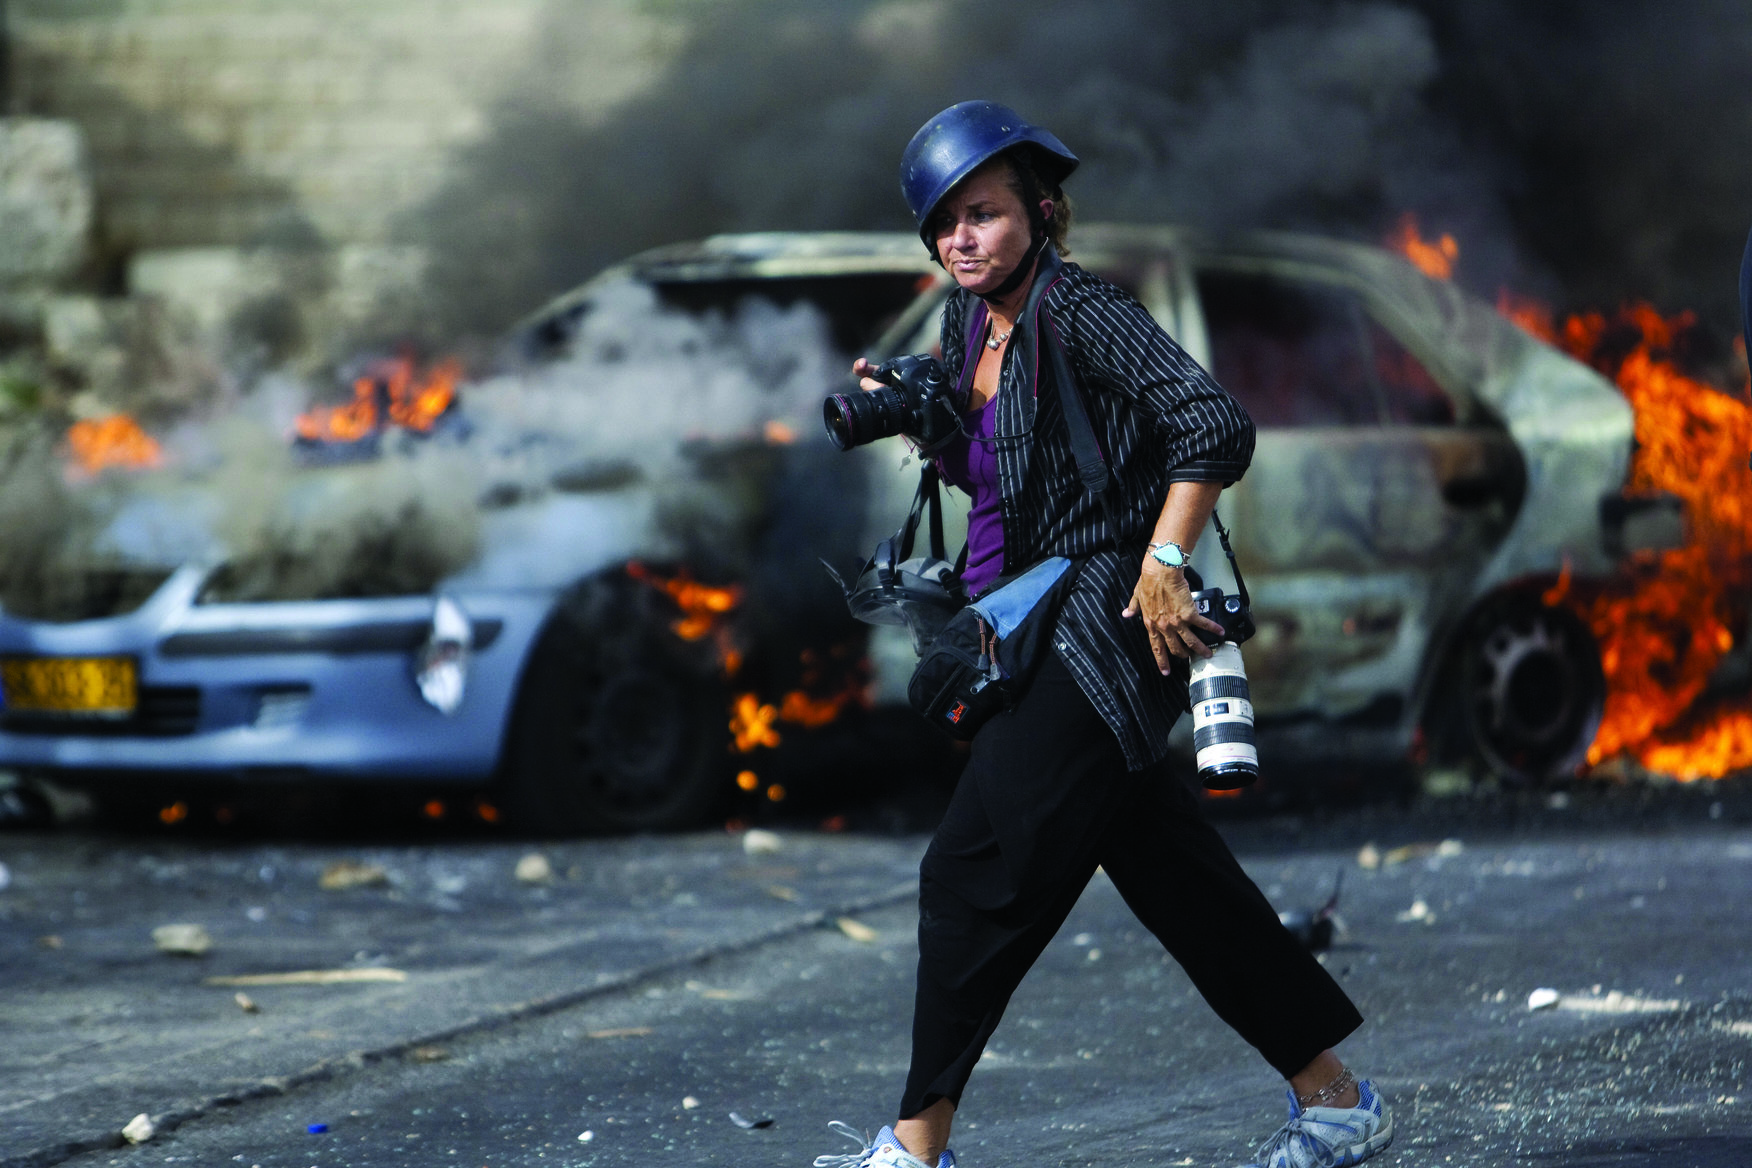 American Photographer Heidi Levine on assignment during clashes in Jerusalem between Palestinians and Israeli forces on September 22,2011. (Photo by Warrick Page).